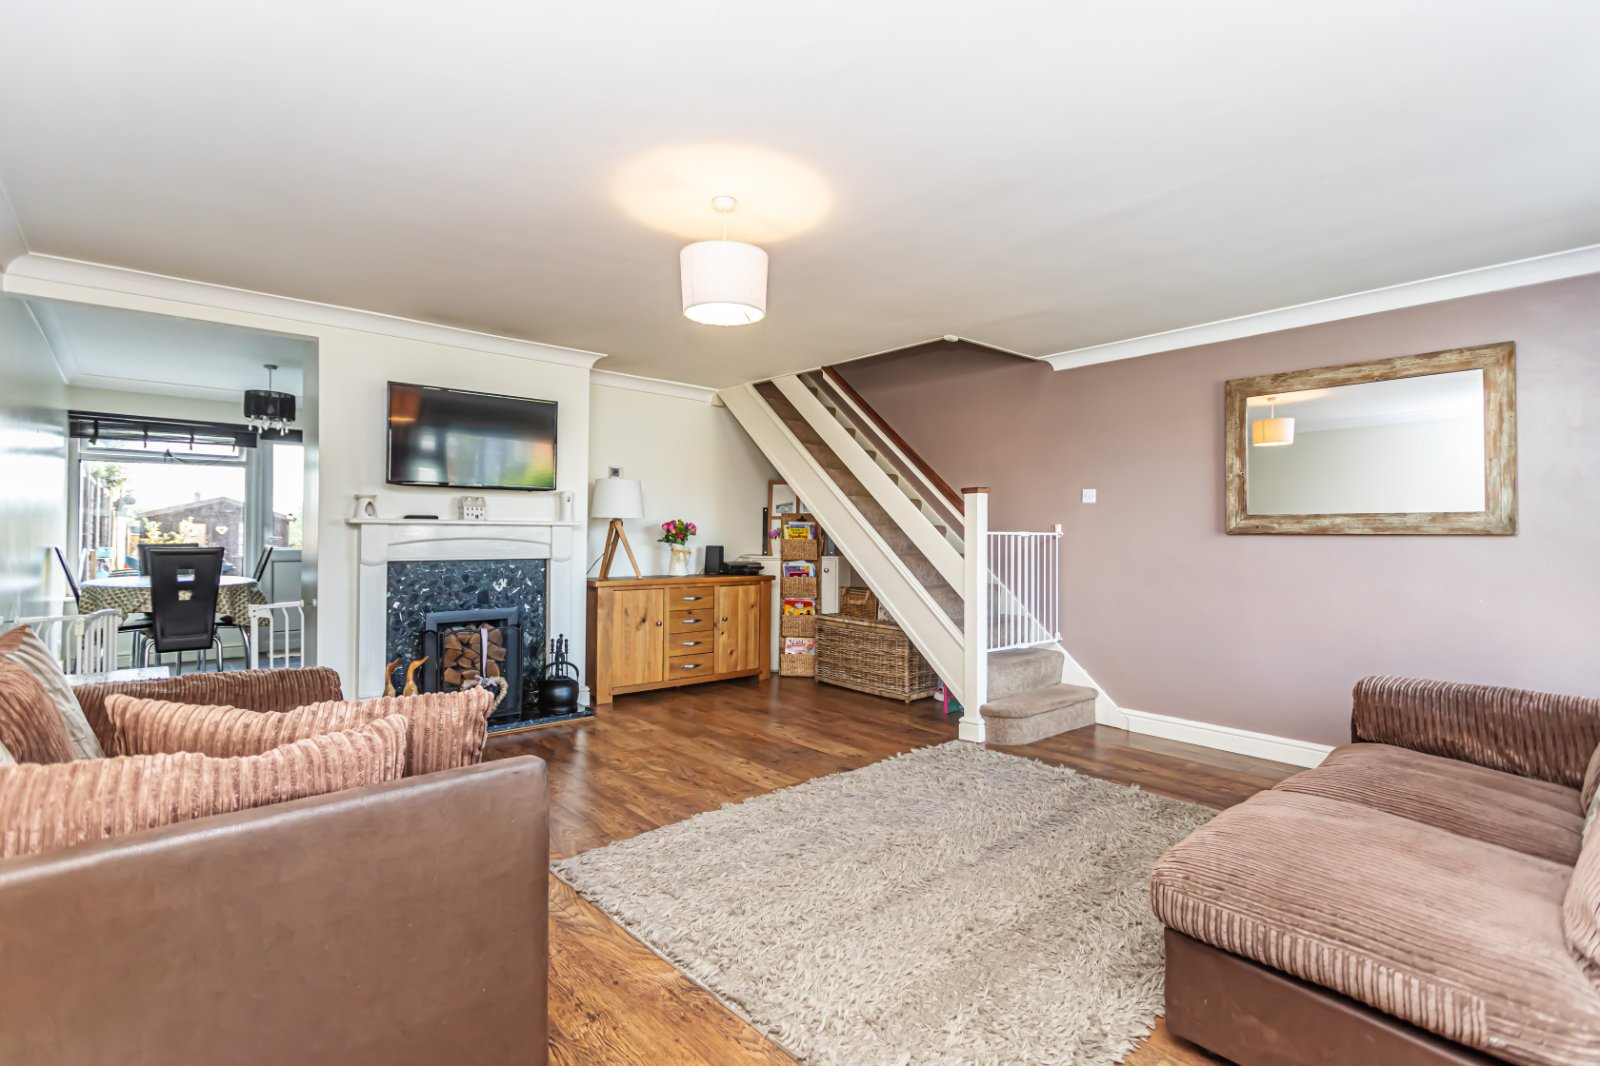 3 bed house for sale in Farnham Road, Branksome  - Property Image 1